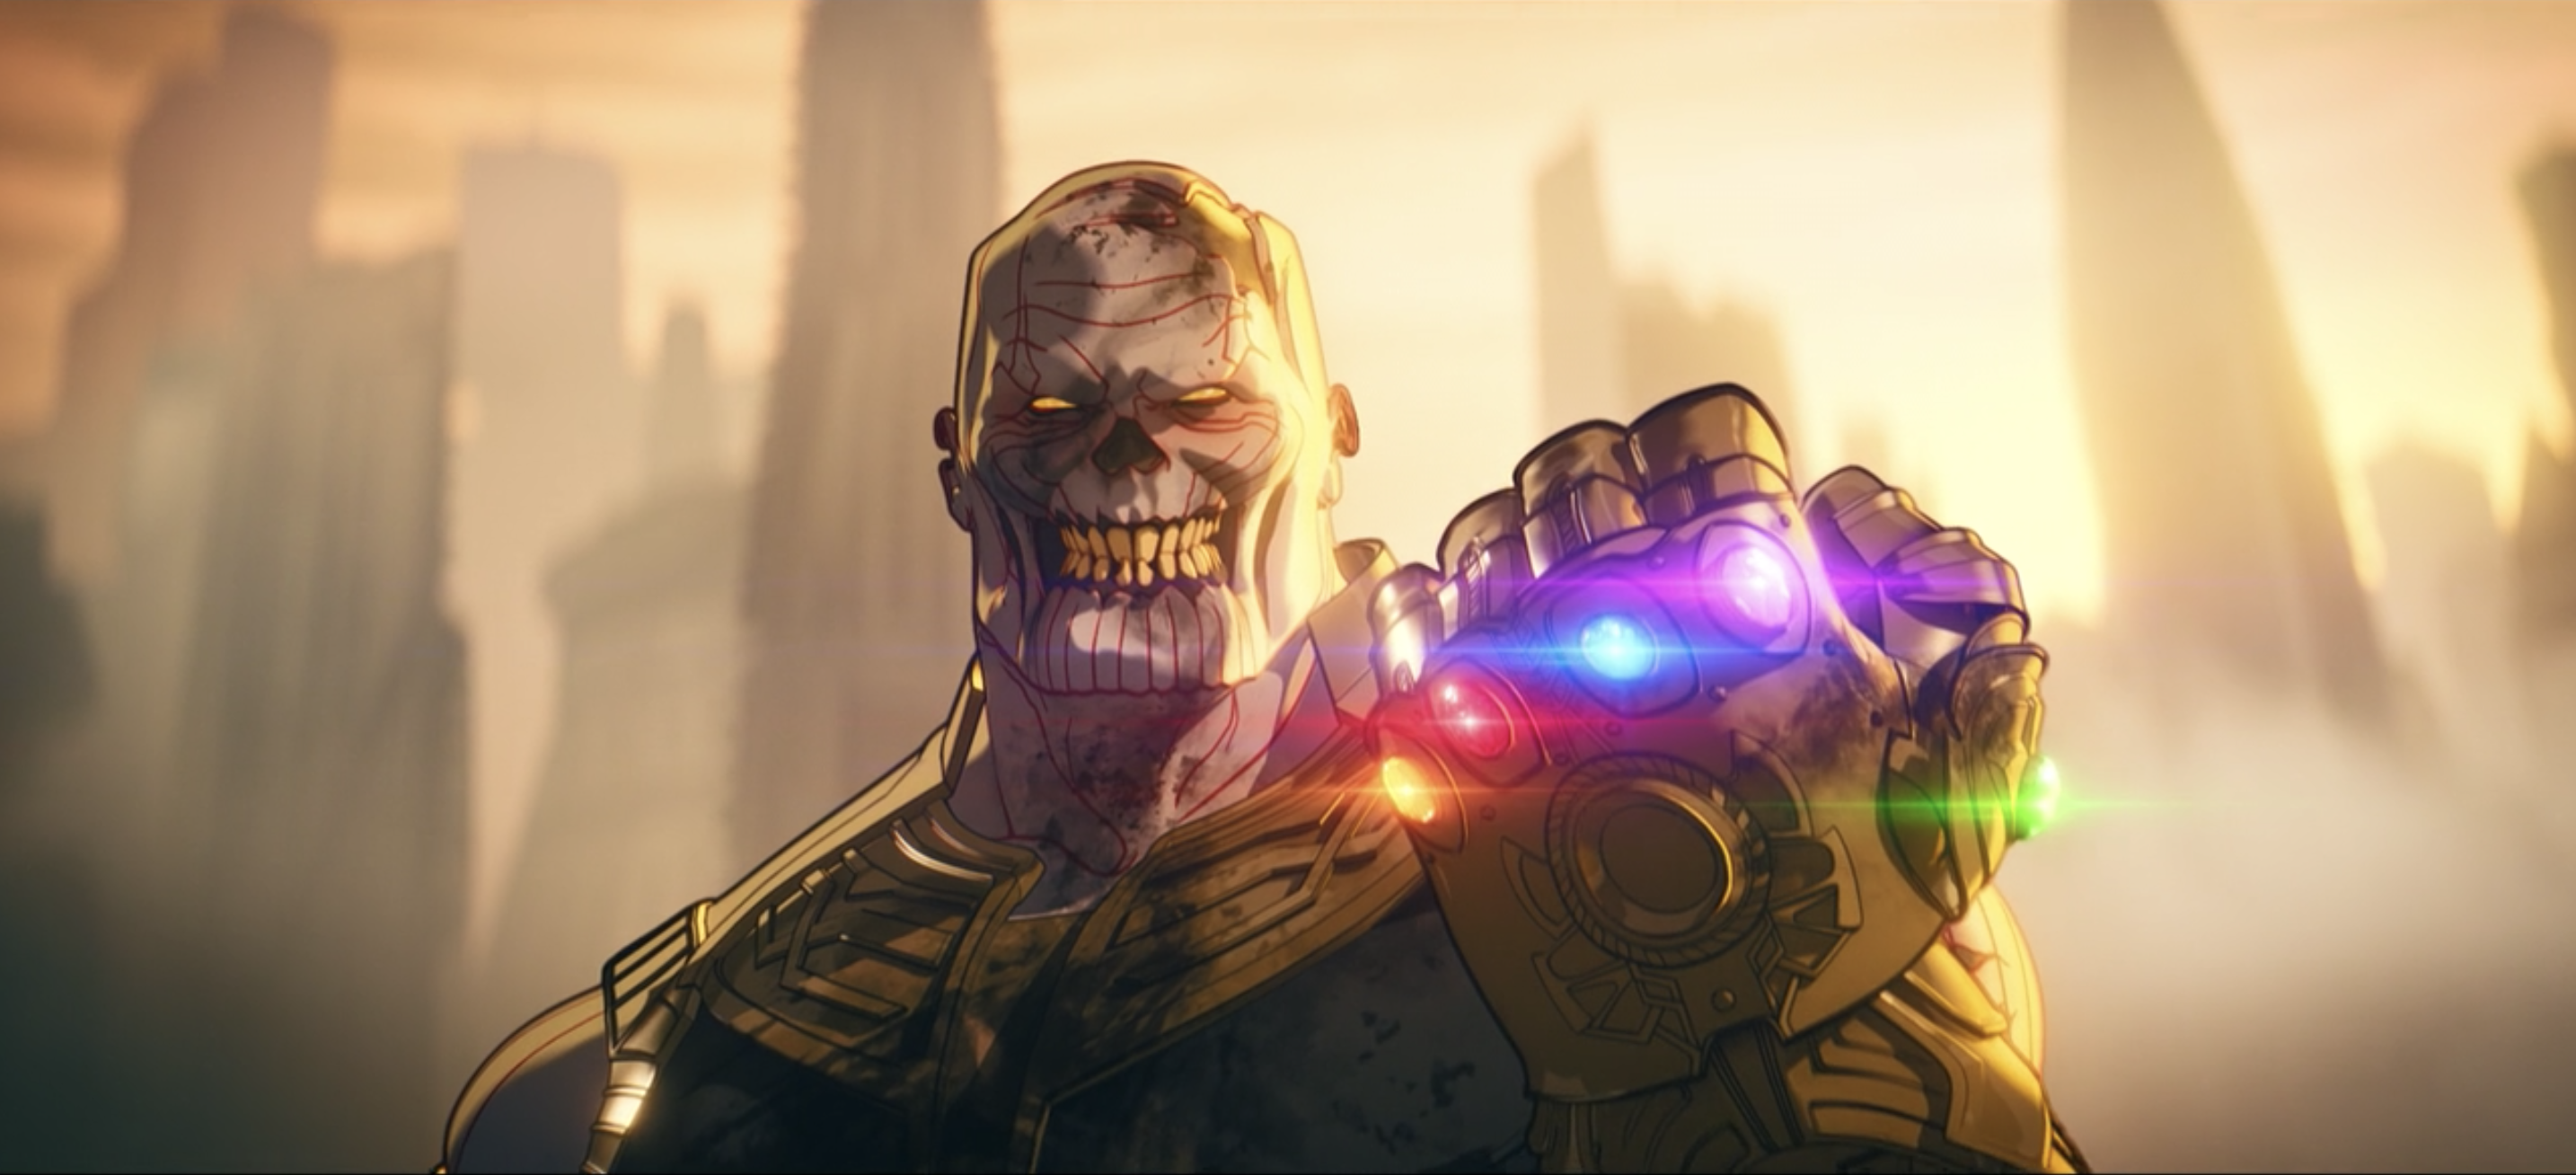 Zombie Thanos in Marvels What if ...?